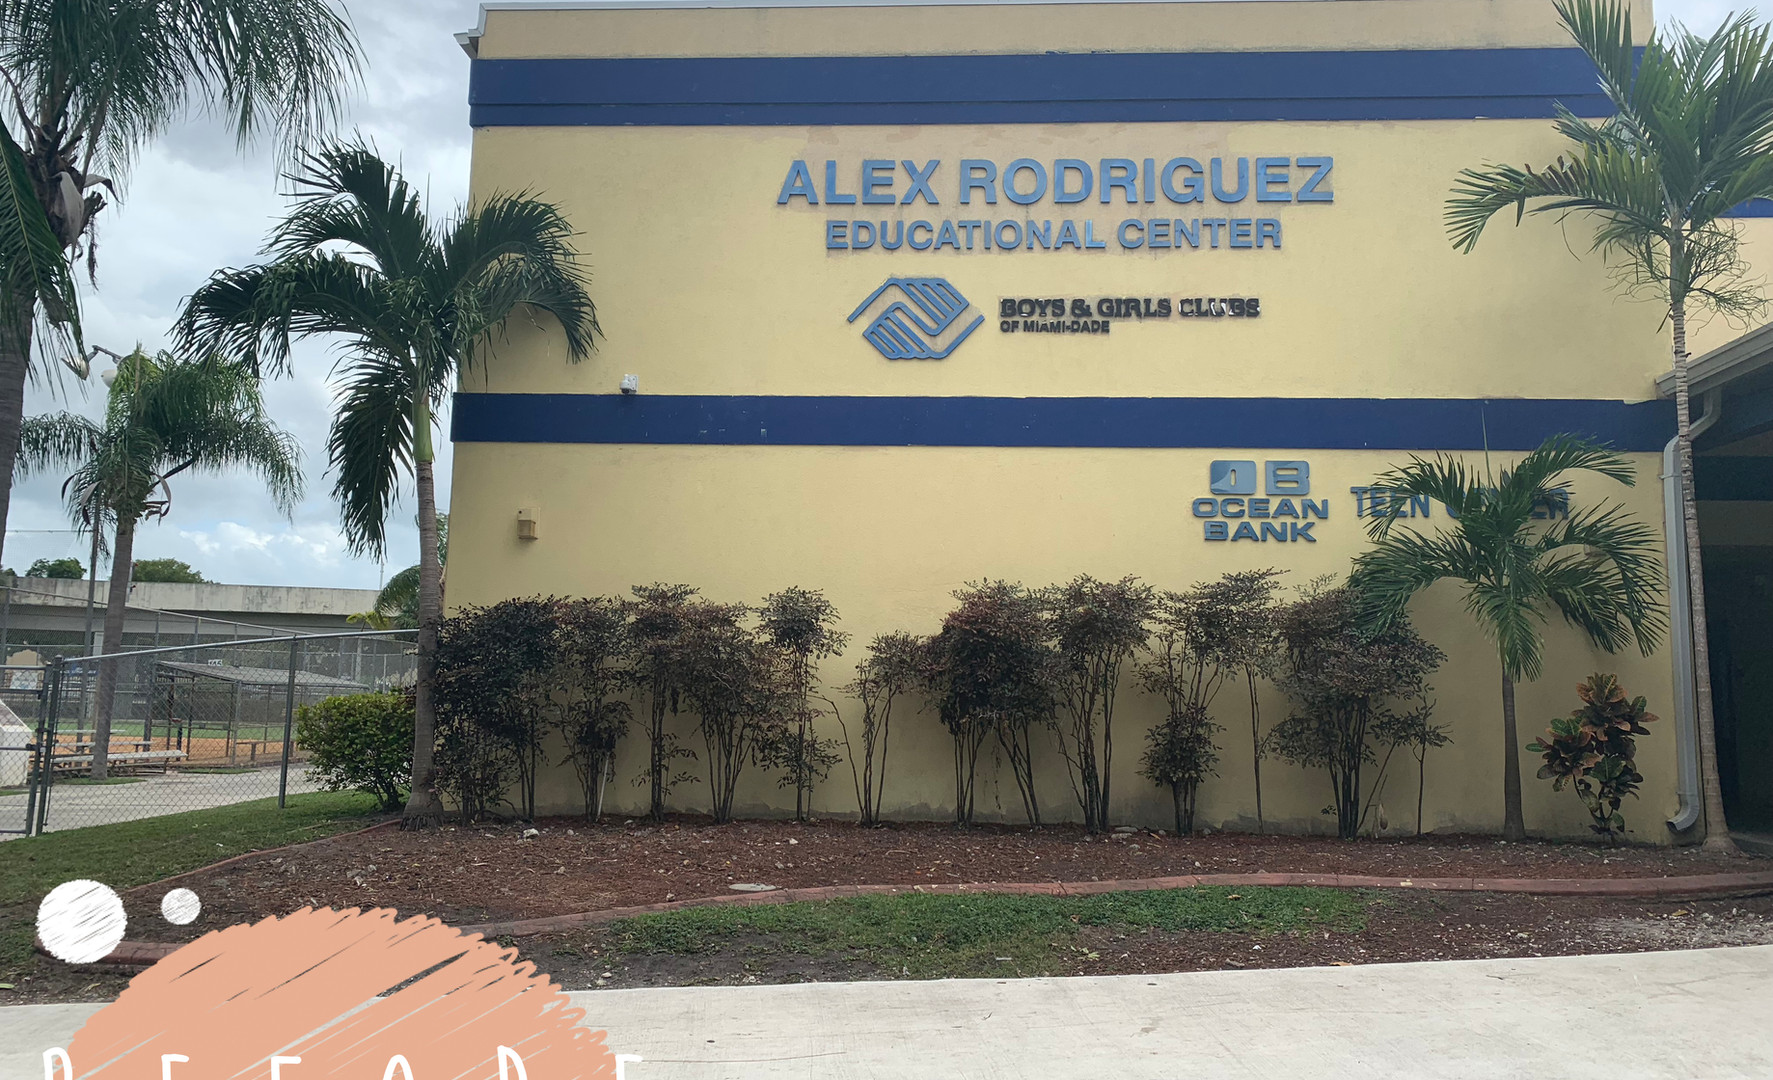 Outside of the A. Rod Building at the BGC Miami-Dade Location